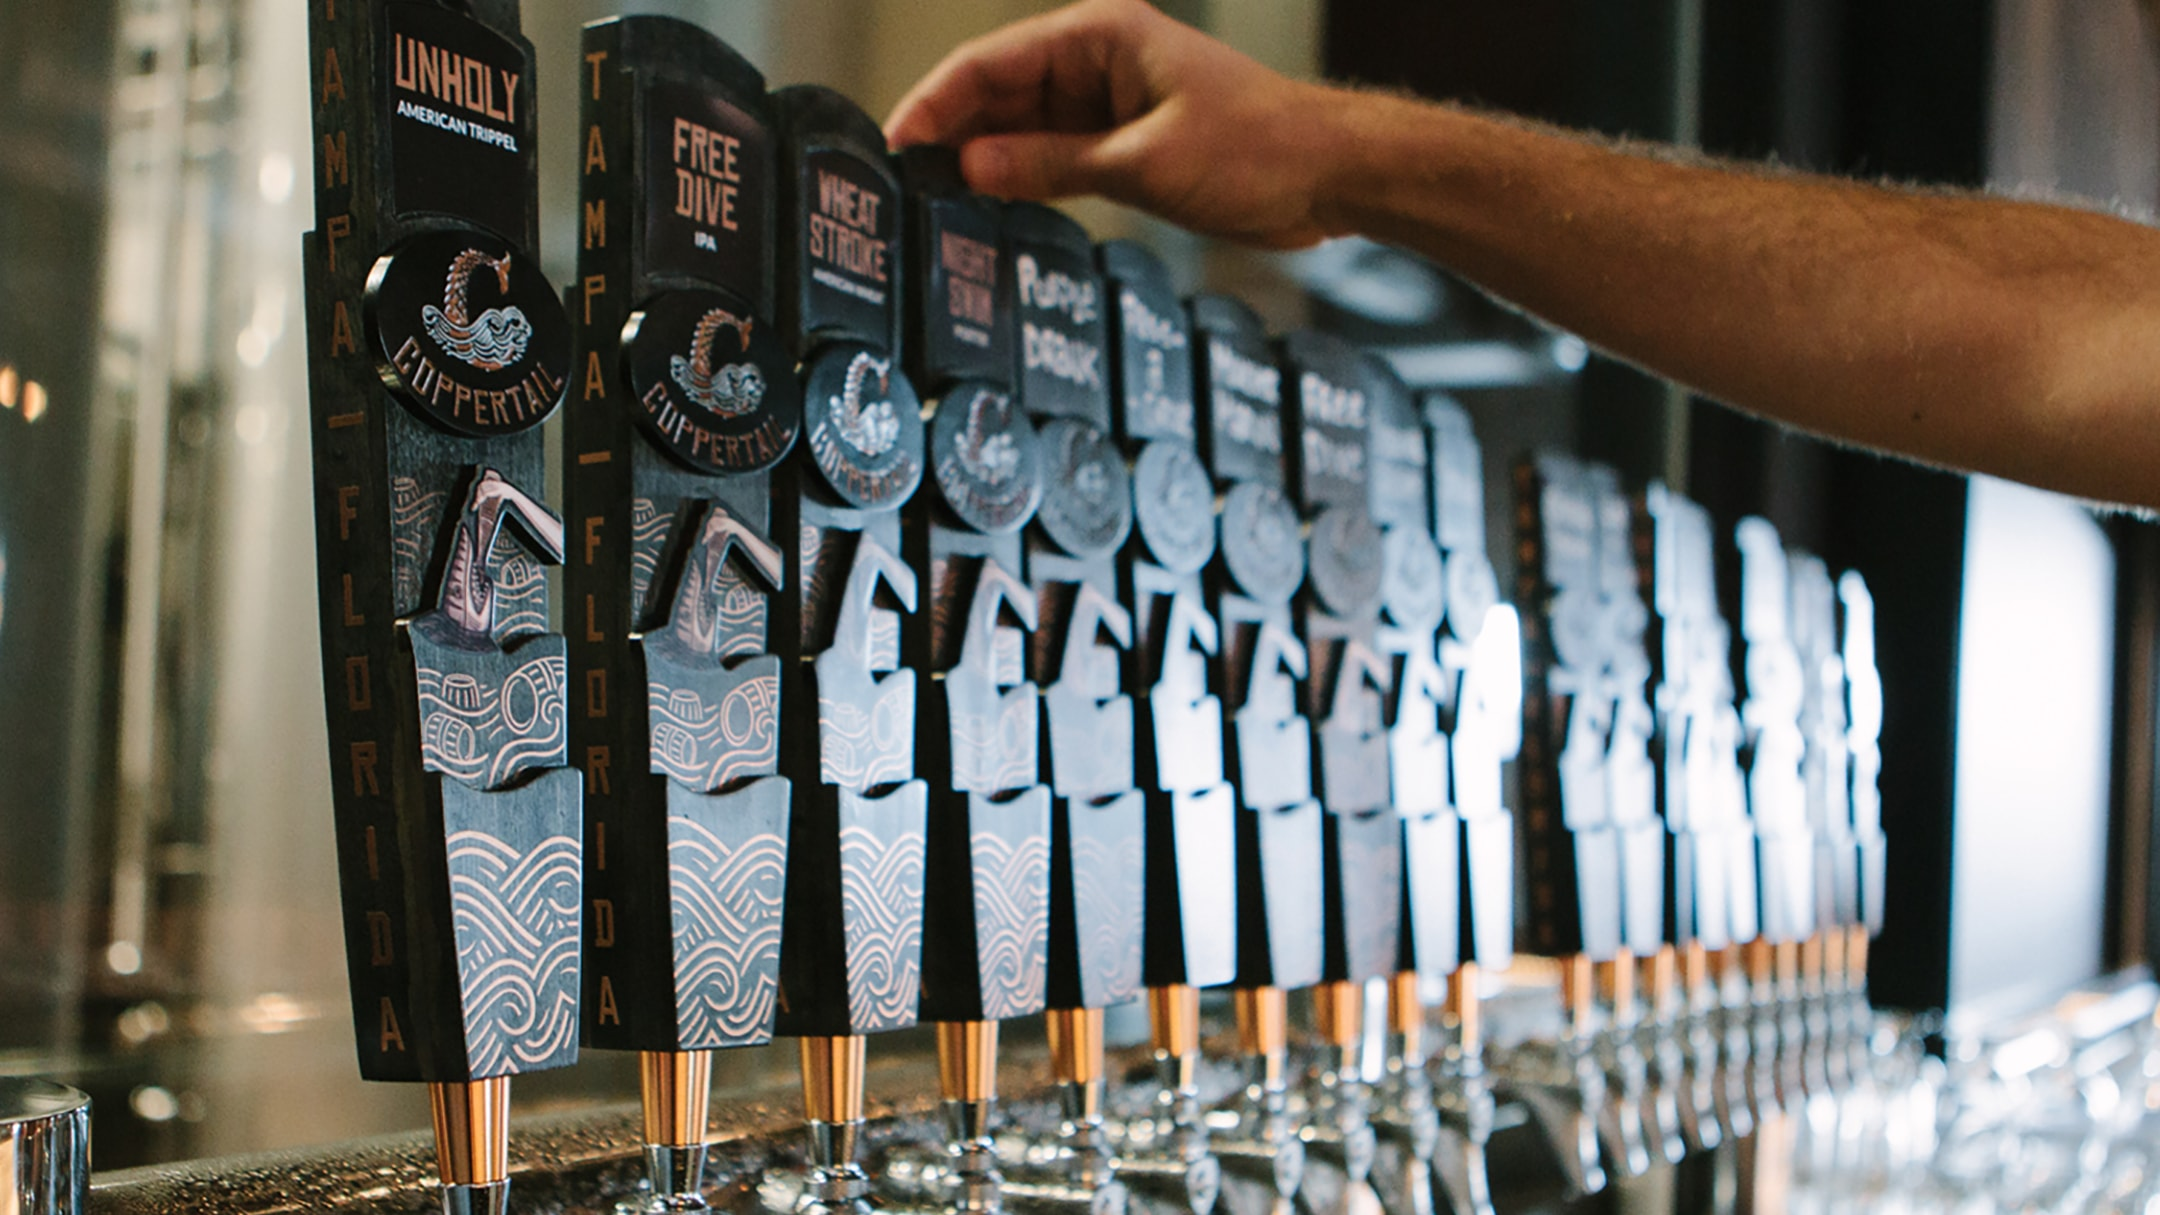 Coppertail beer tap handles